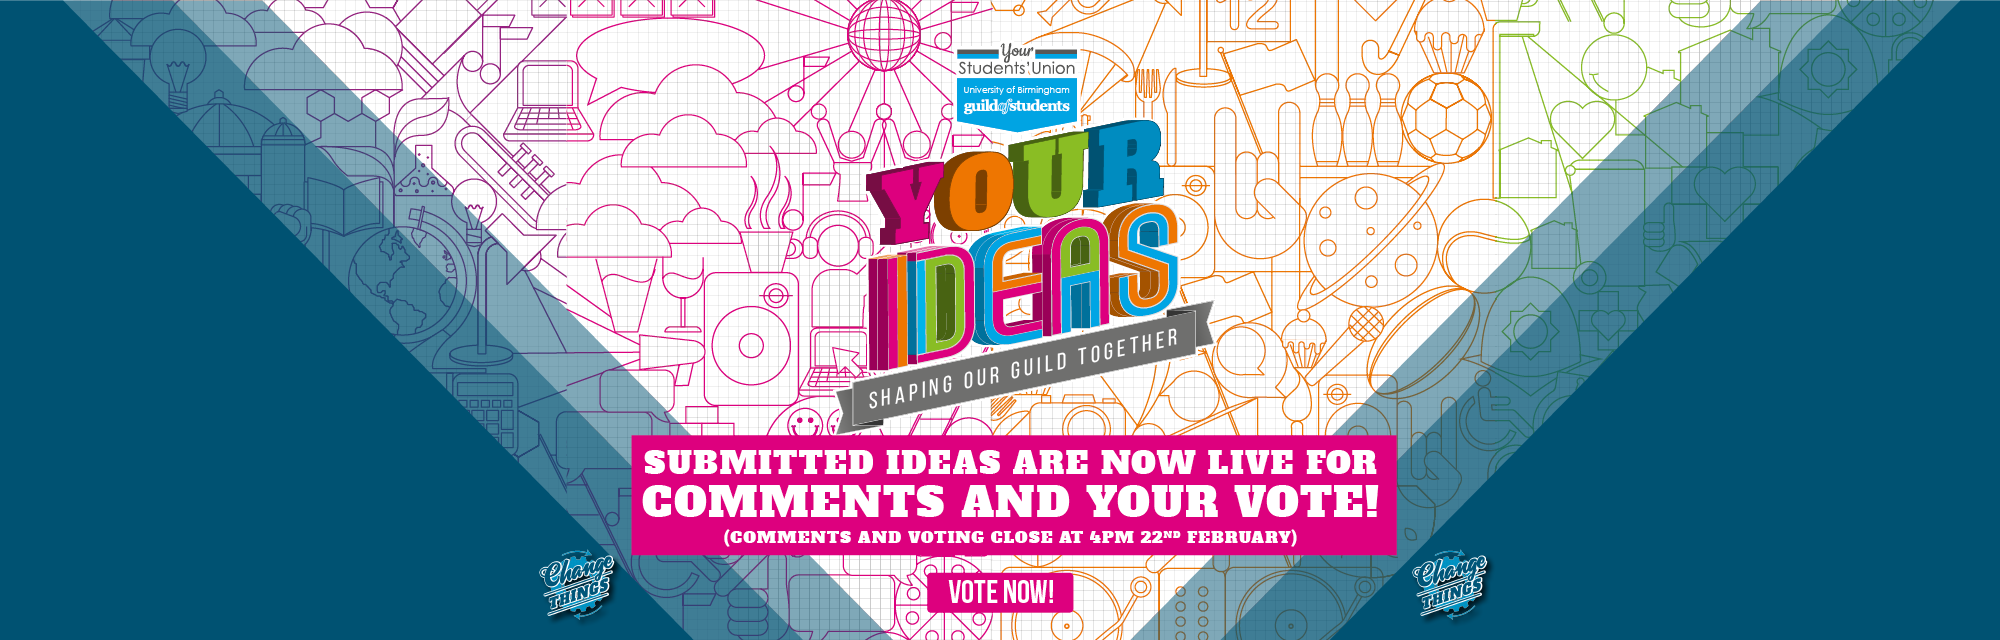 Your Ideas - Comments and Voting now open until 22nd February at 4pm - Click here for more informati